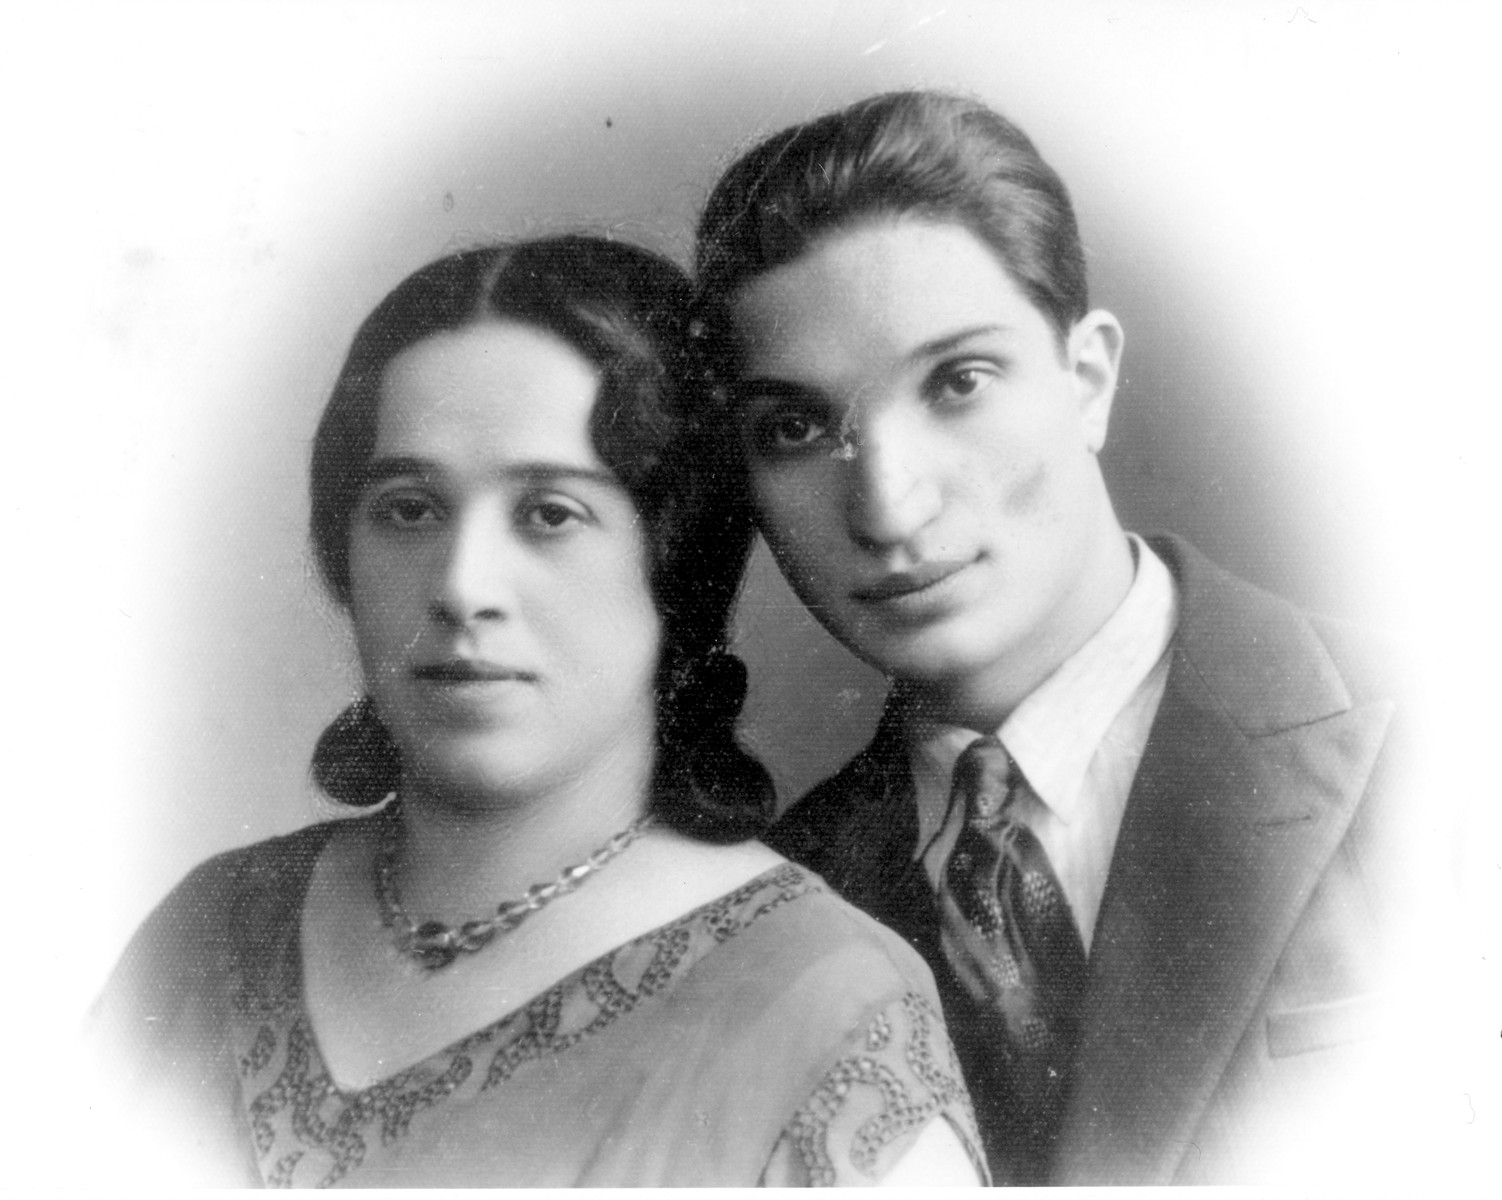 Studio portrait of of Rabbi Chaim Taumtschen and his wife Chiaeh Gutah Leah Rosenbaum Taumtschen, both of whom were killed in the Holocaust.